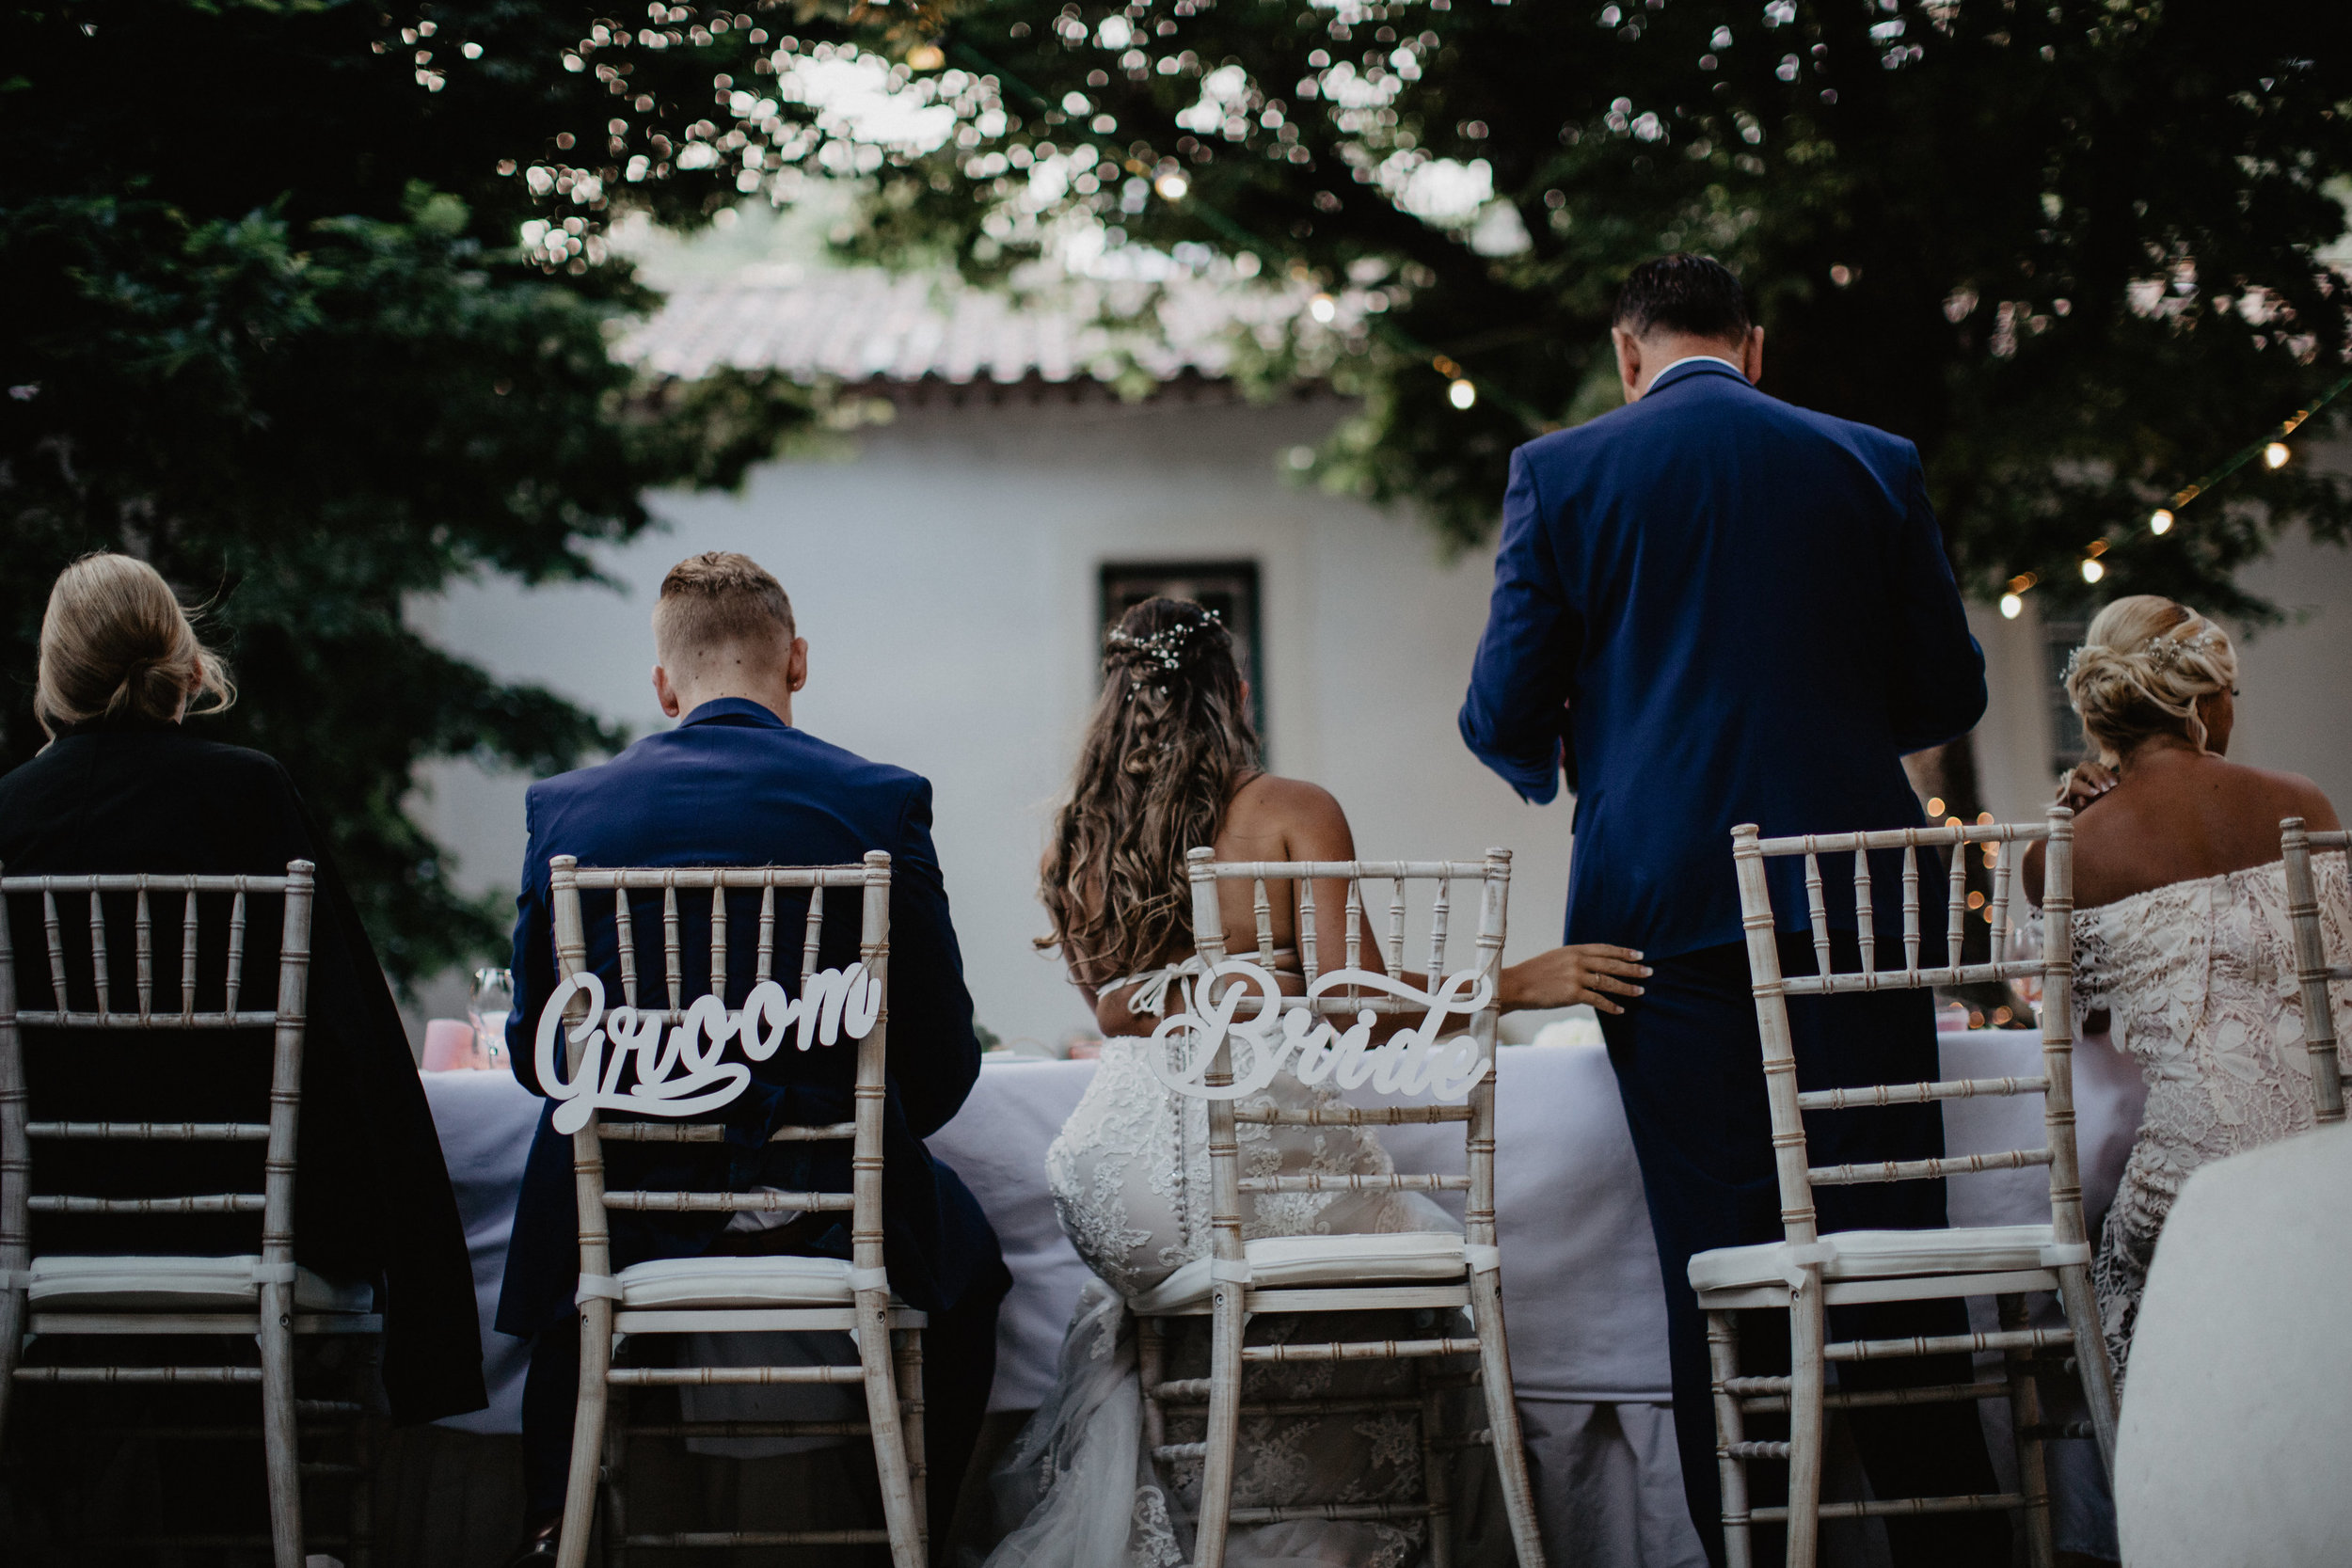 Lapela-photography-destination-wedding-Monchique-Algarve88.jpg